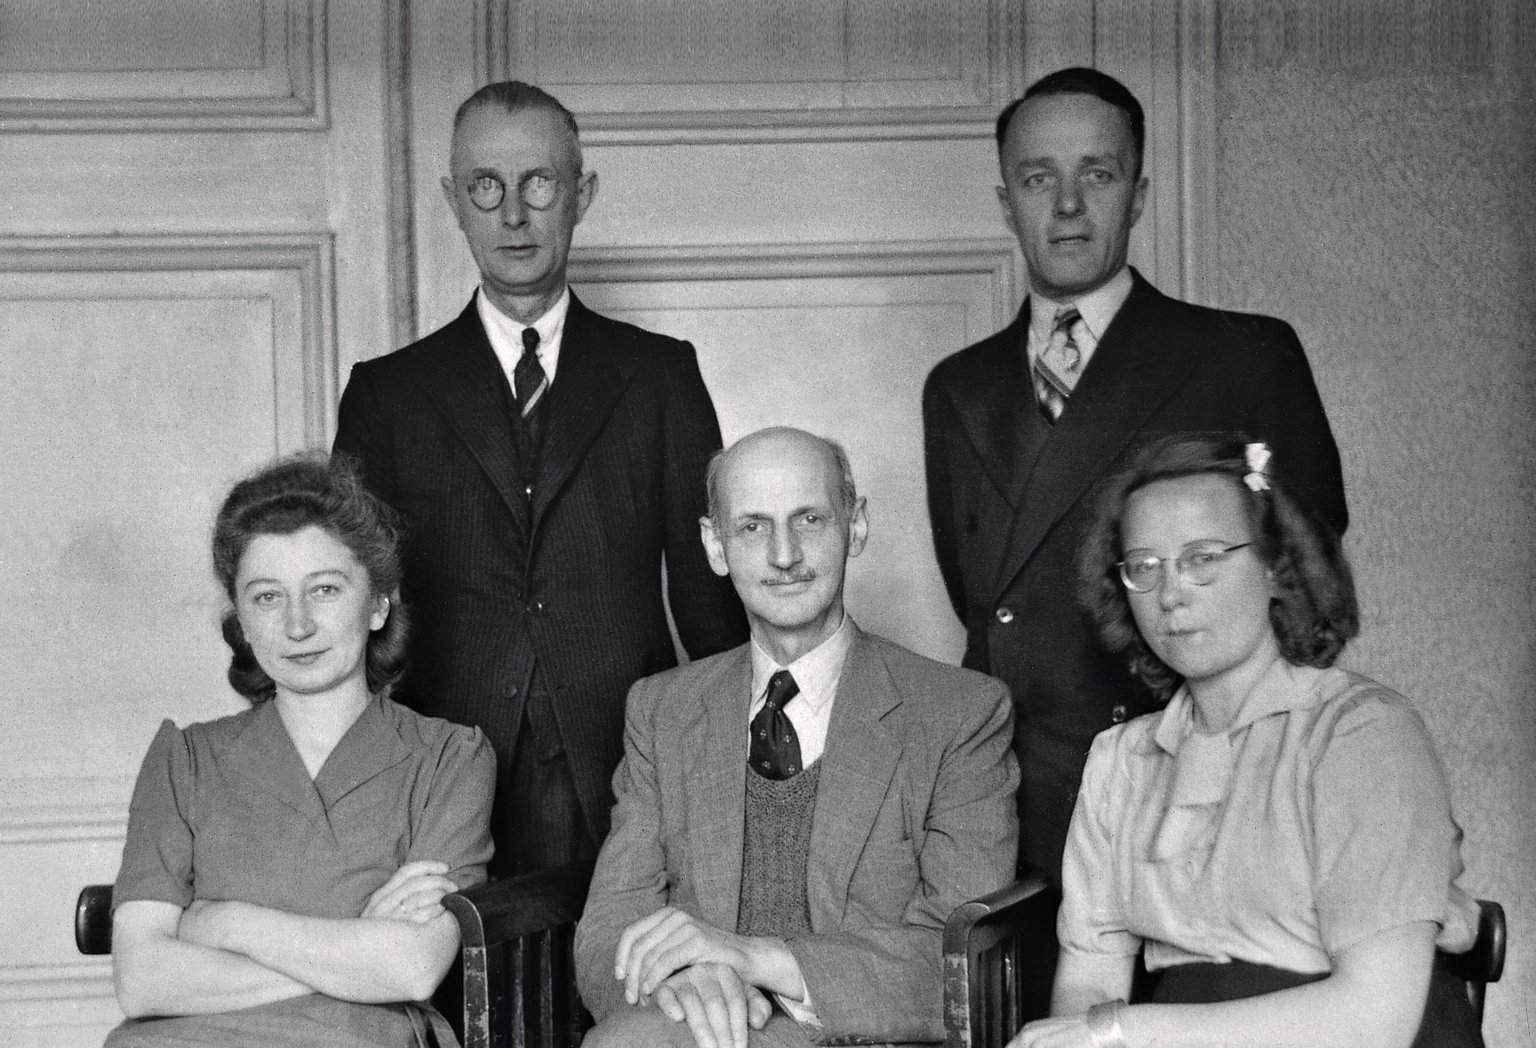 Otto Frank with the helpers in the office at Prinsengracht 263, October 1945. From left to right: Miep Gies, Johannes Kleiman, Otto Frank, Victor Kugler, and Bep Voskuijl.